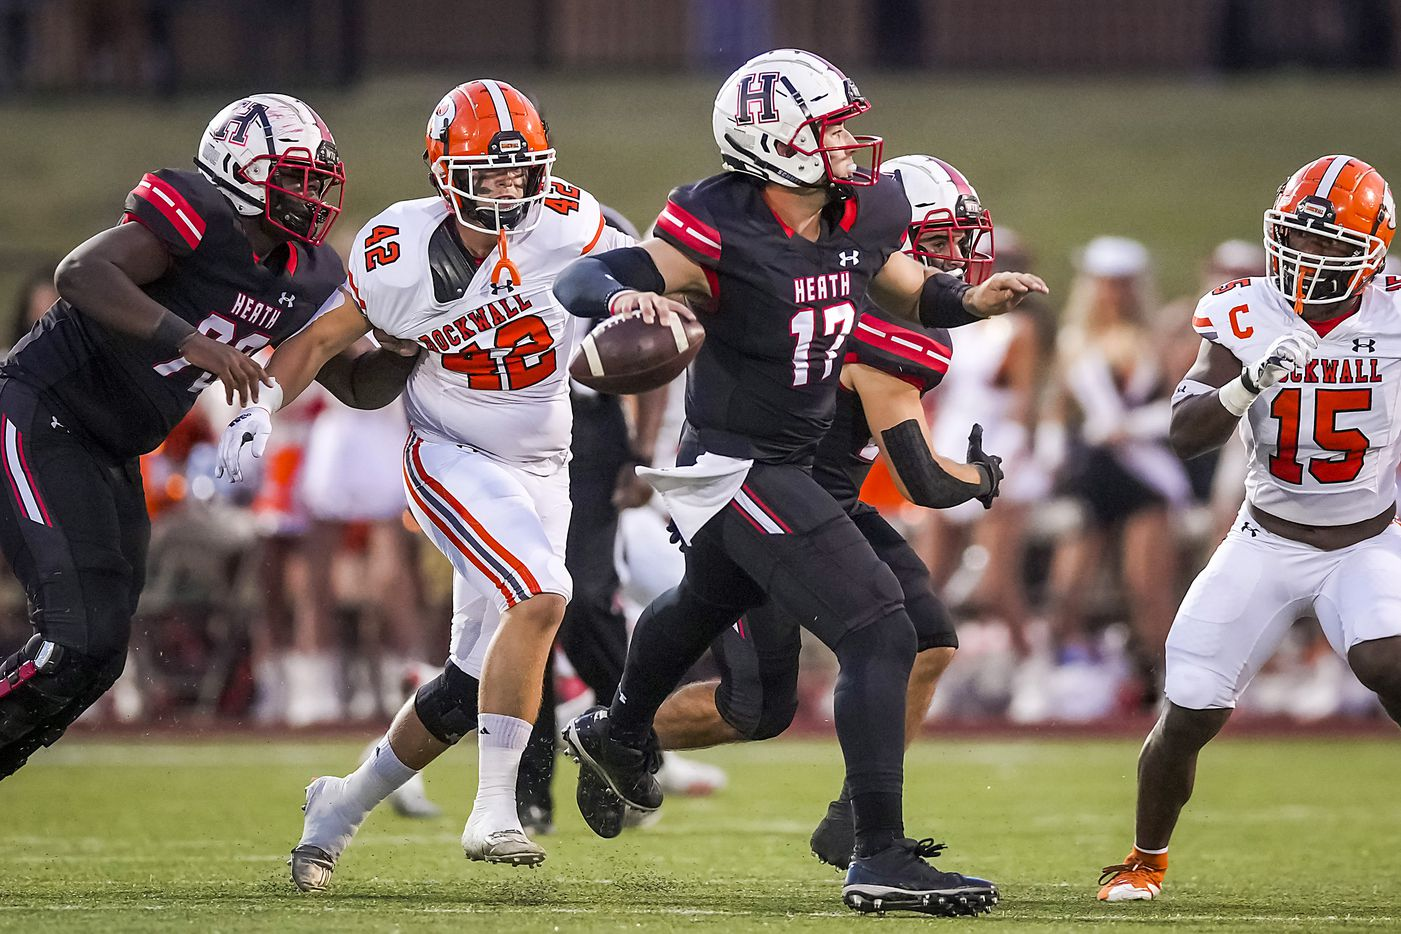 Rockwall-Heath quarterback Josh Hoover (17) scrambles away from Rockwall defensive lineman Robert Buck (42) and linebacker Deyreck Dean (15) during the first half of a District 10-6A high school football game at Wilkerson-Sanders Stadium on Friday, Sept. 24, 2021, in Rockwall.